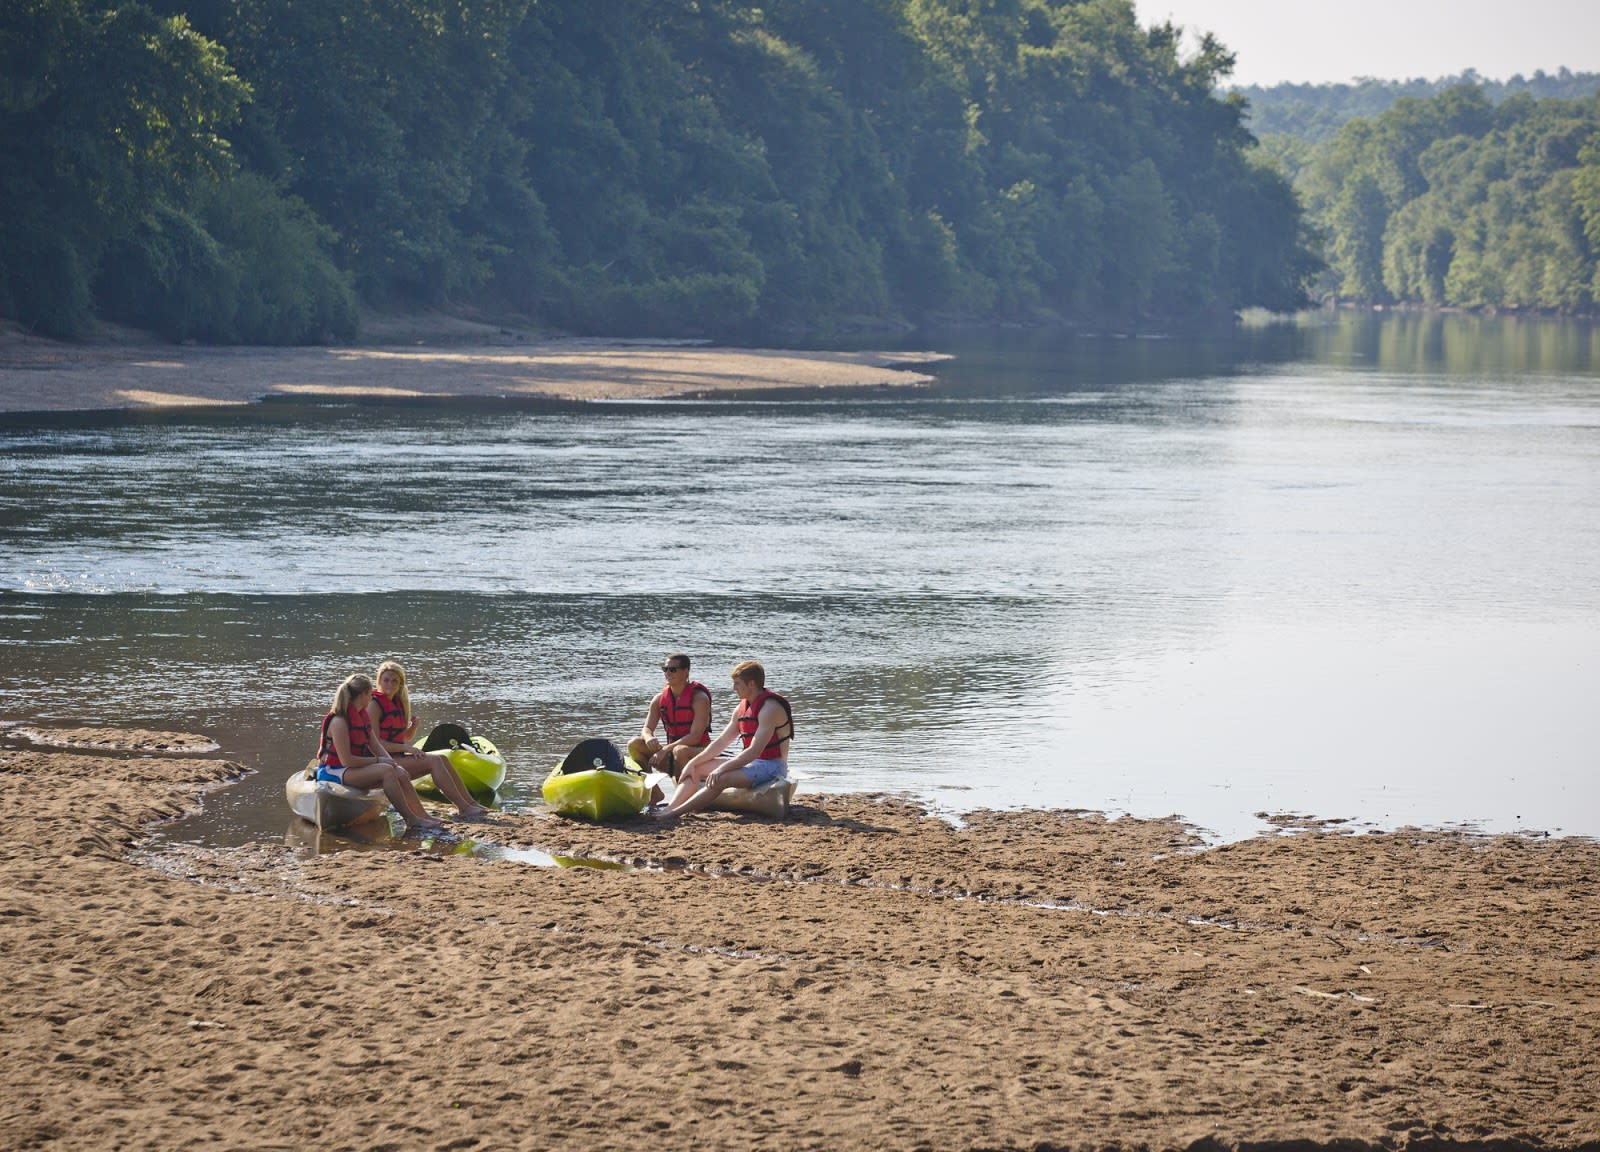 Paddlers take a break on the shores of the Oconee River